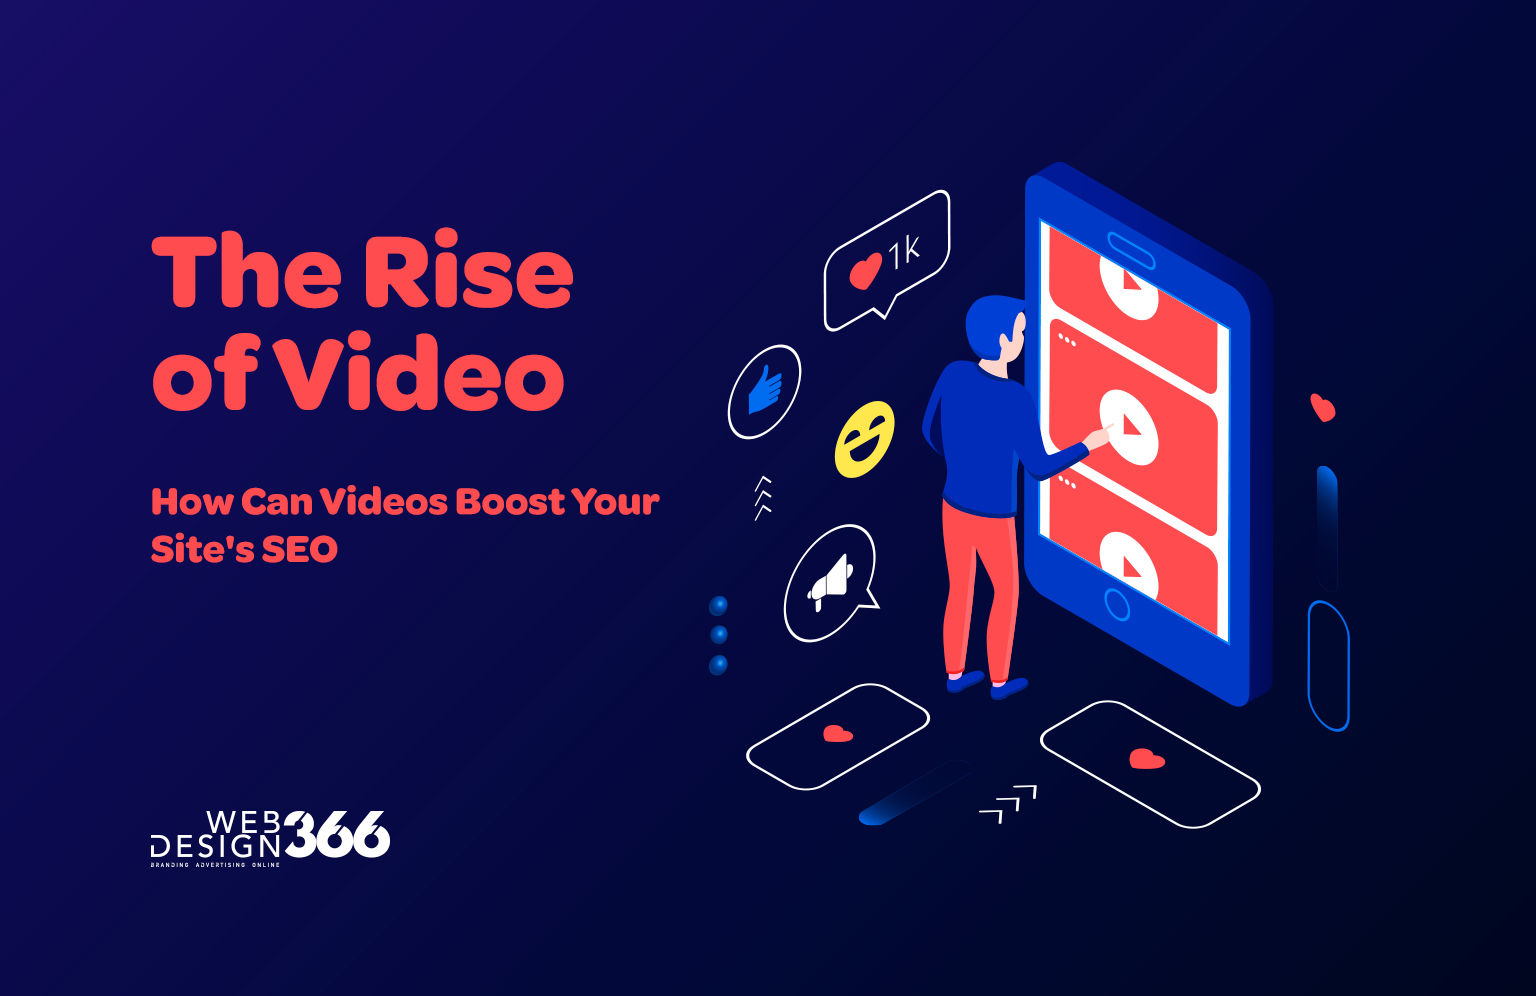 The Rise of Video: How Can Videos Boost Your Site's SEO